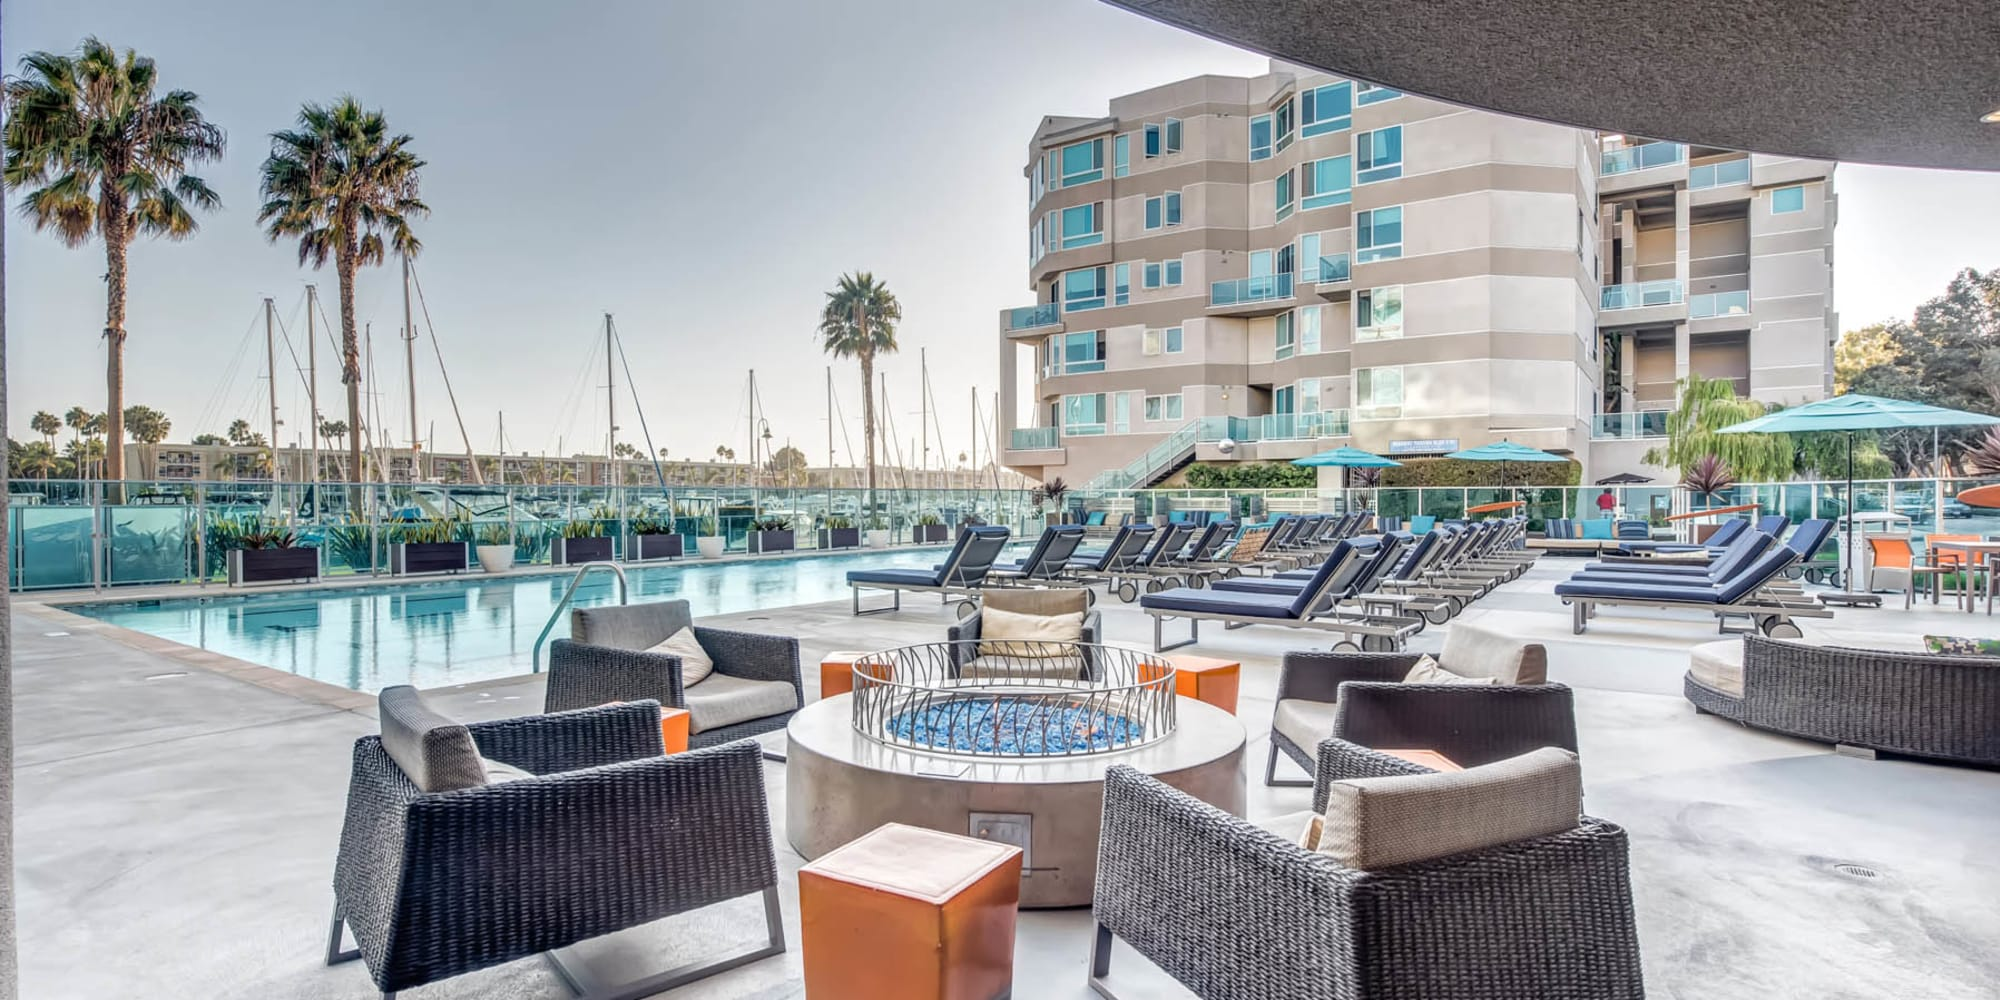 Lounge area near the pool at Esprit Marina del Rey in Marina Del Rey, California